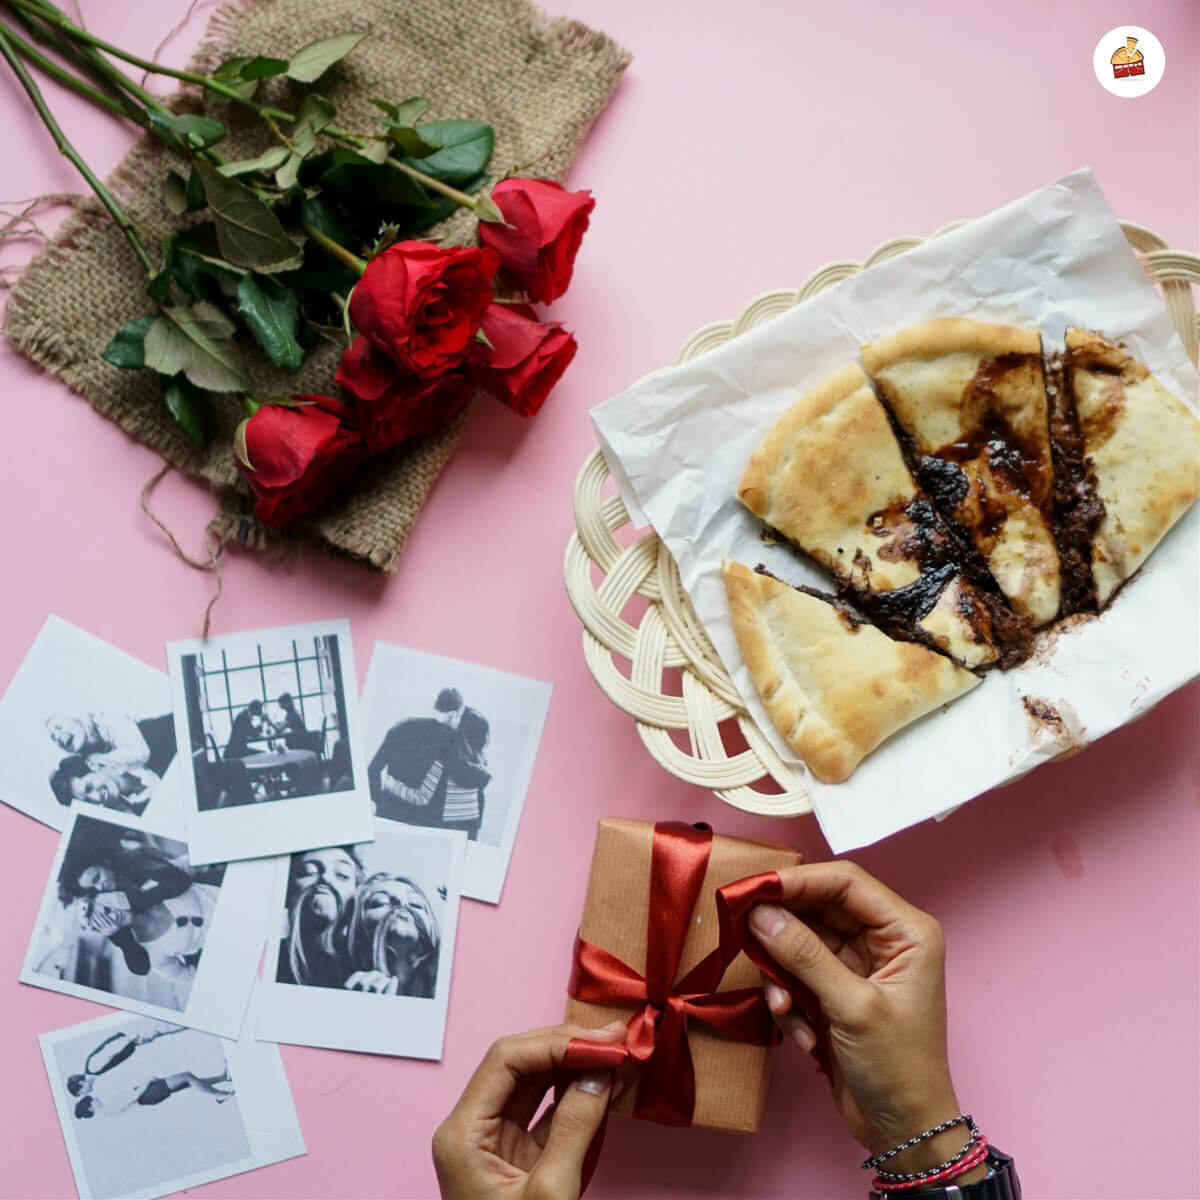 Melting Choco Cheese Panties Pizza With Small Brown Box With Red Rose Melting of Choco Cheese Slide